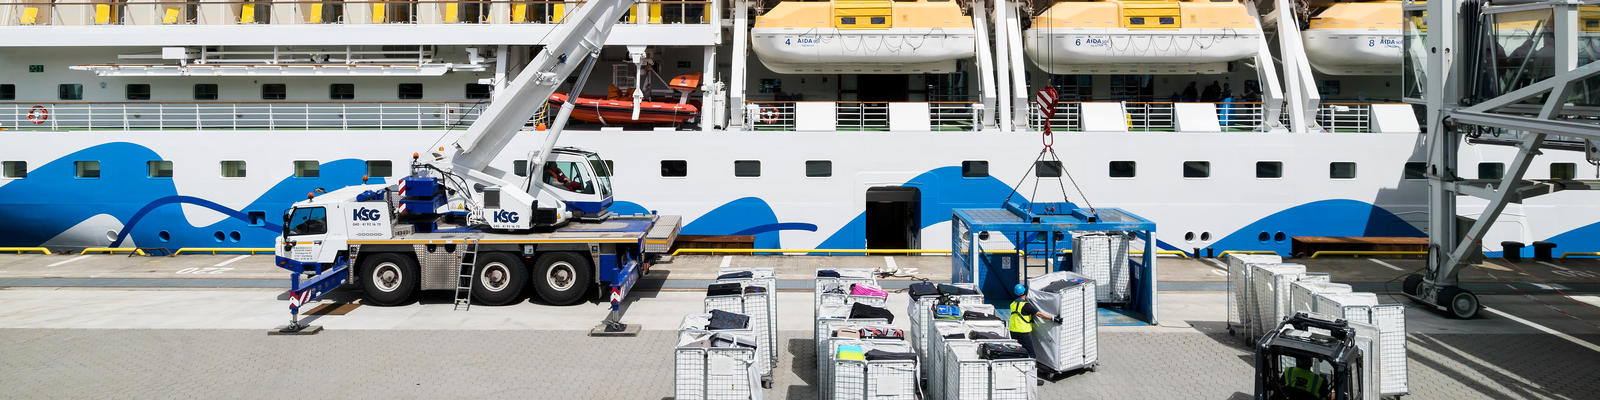 Luggage being loaded onto a cruise ship (Photo: By Bjoern Wylezich/Shutterstock)